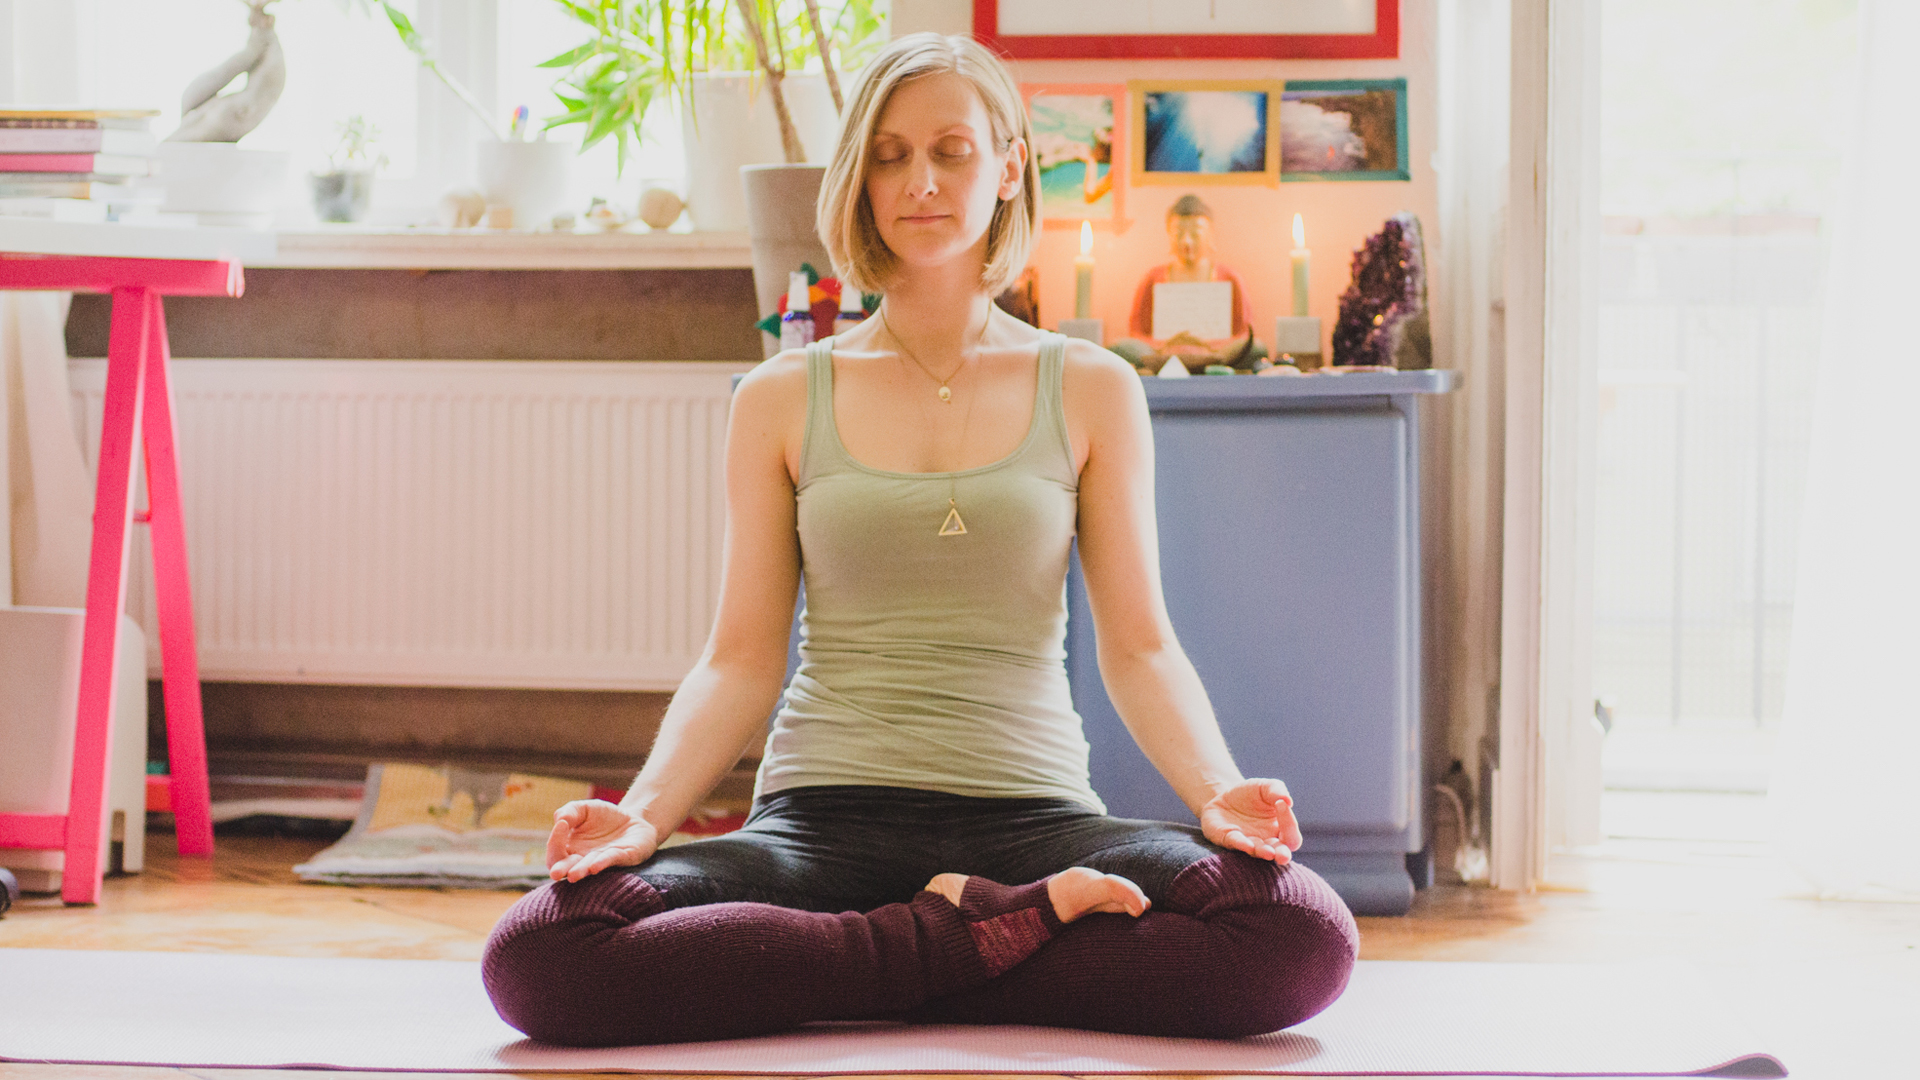 Yoga-Teacher-Isabella-Paulsen-talks-about-healing-leaky-gut-syndrome,-bone-broth-and-yoga.